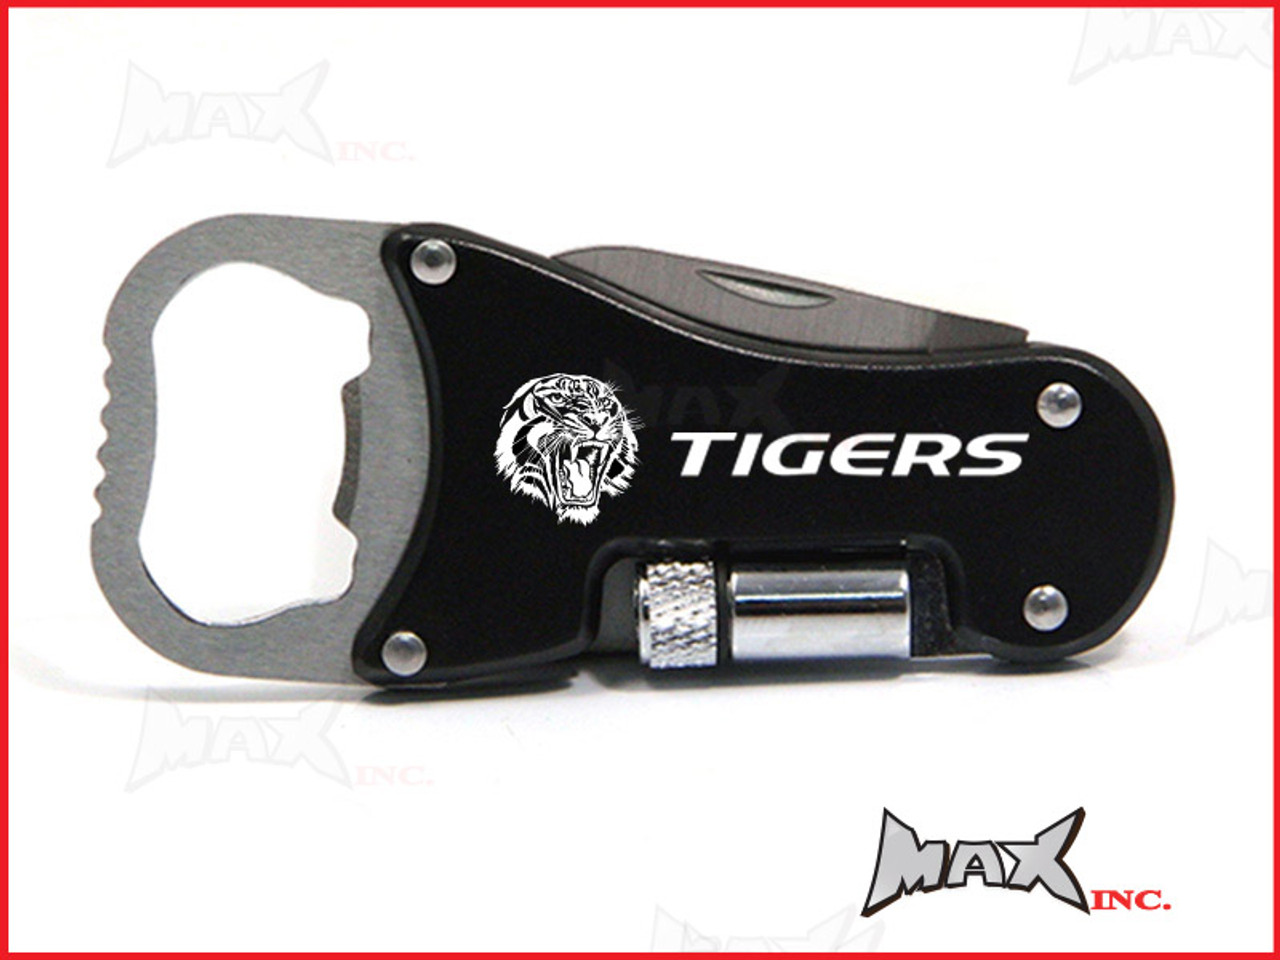 TIGERS - Lasered Logo Keyring / Pocket Knife / LED Torch / Bottle Opener